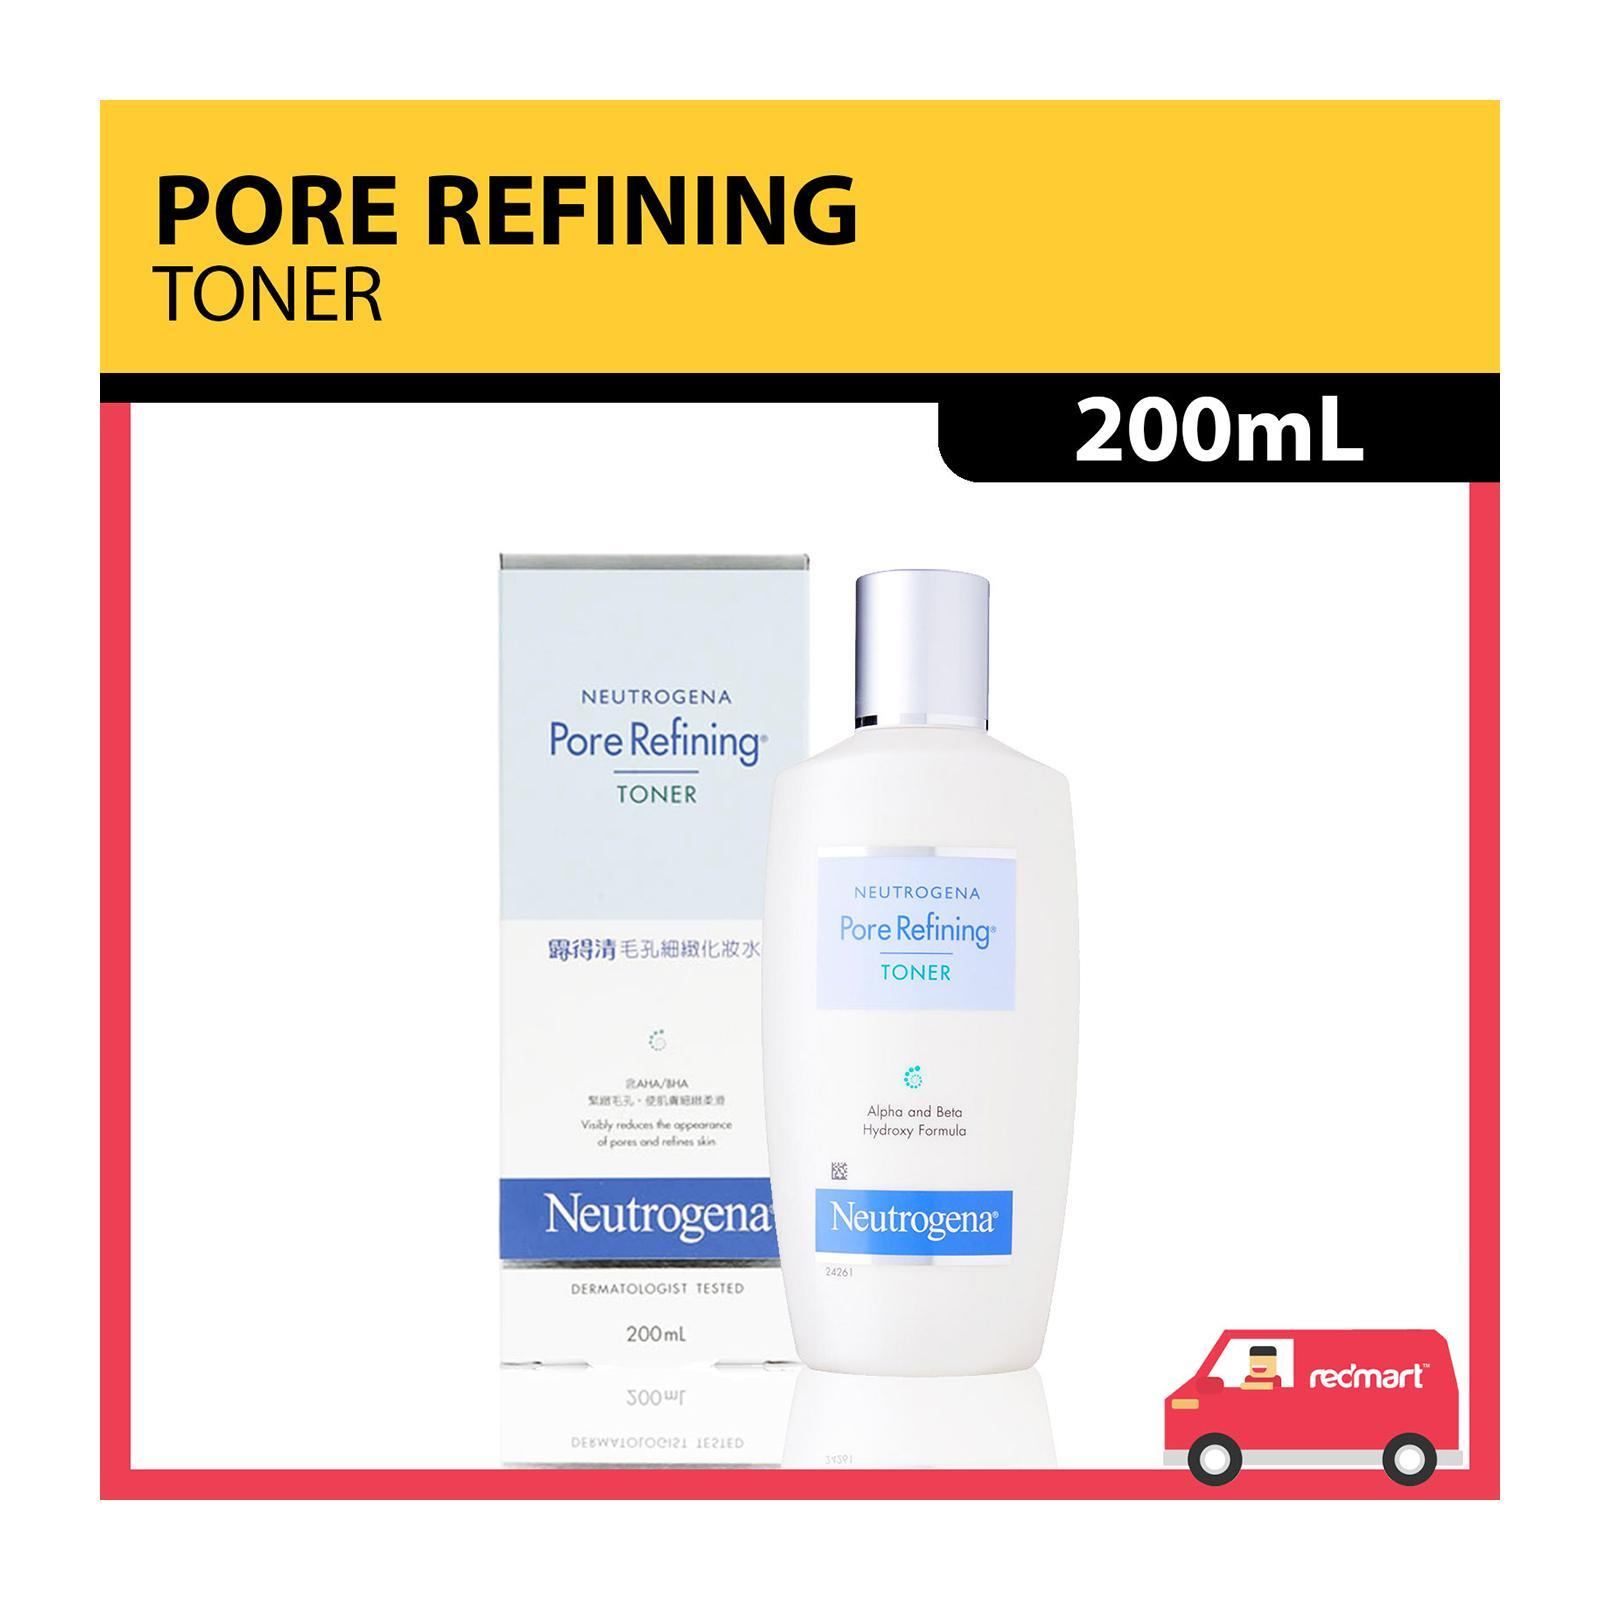 NEUTROGENA Pore Refining Toner 200ml